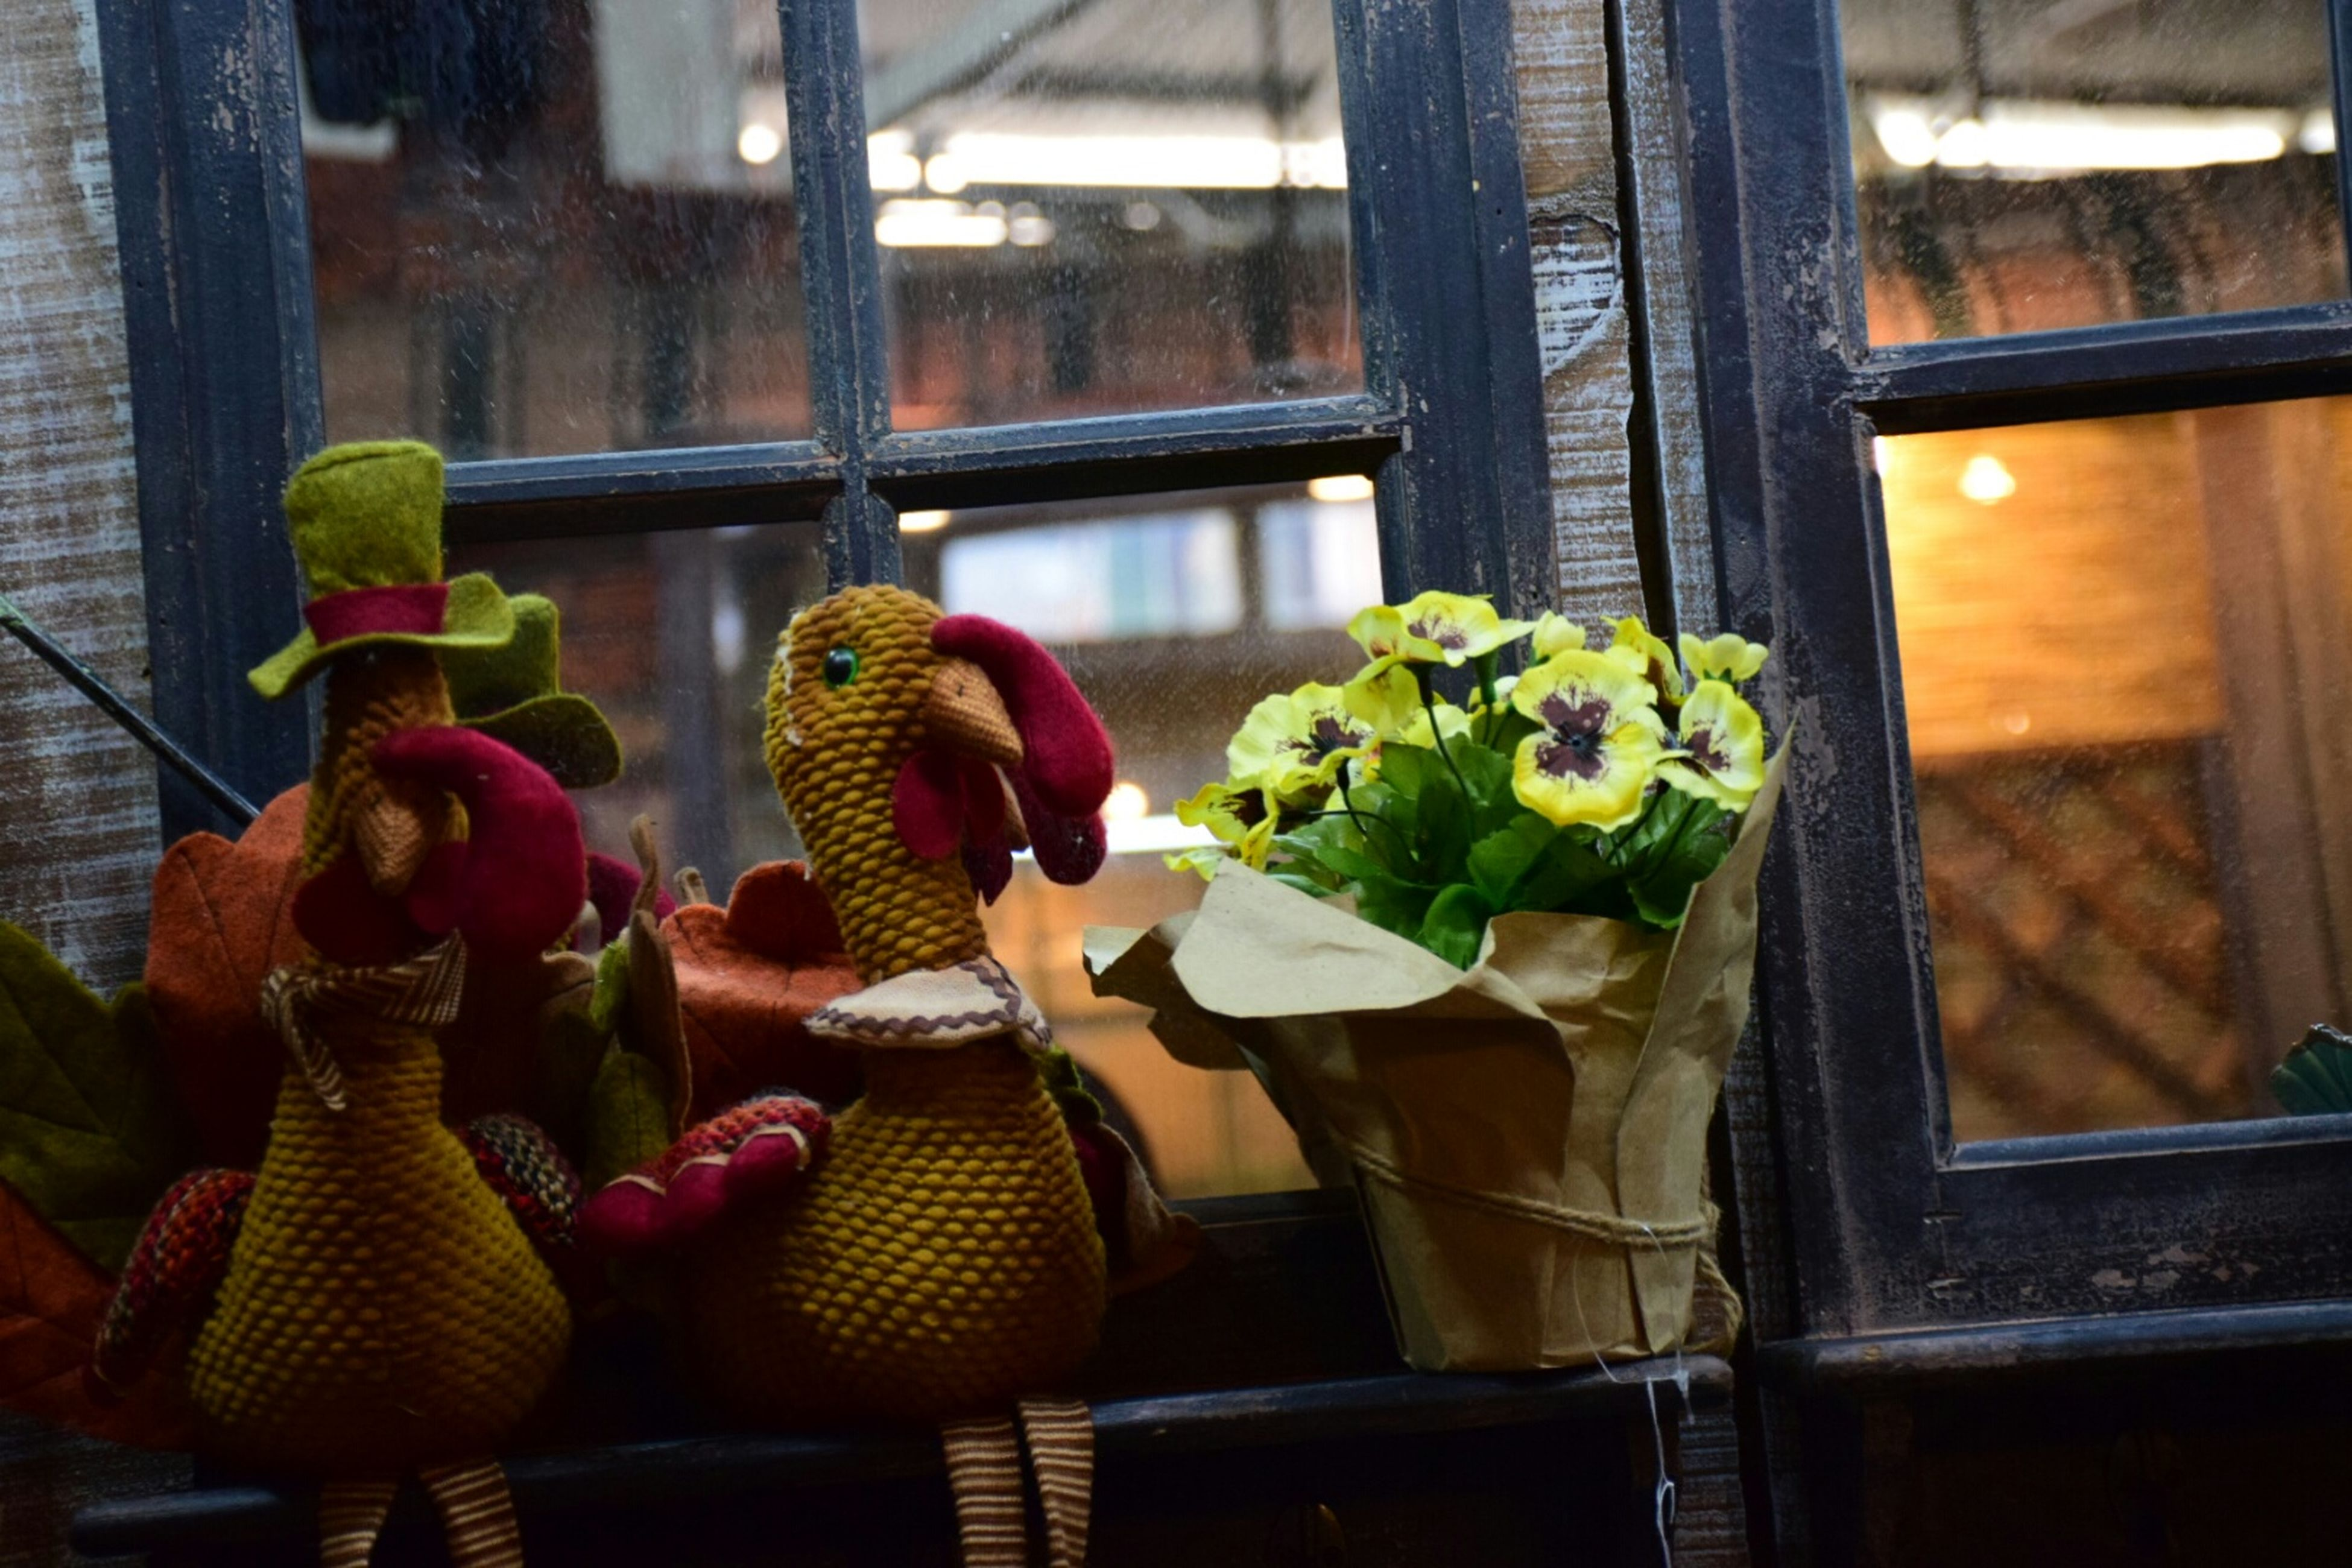 freshness, food and drink, food, fruit, basket, healthy eating, for sale, flower, hanging, variation, indoors, potted plant, choice, retail, wicker, still life, abundance, plant, market stall, close-up